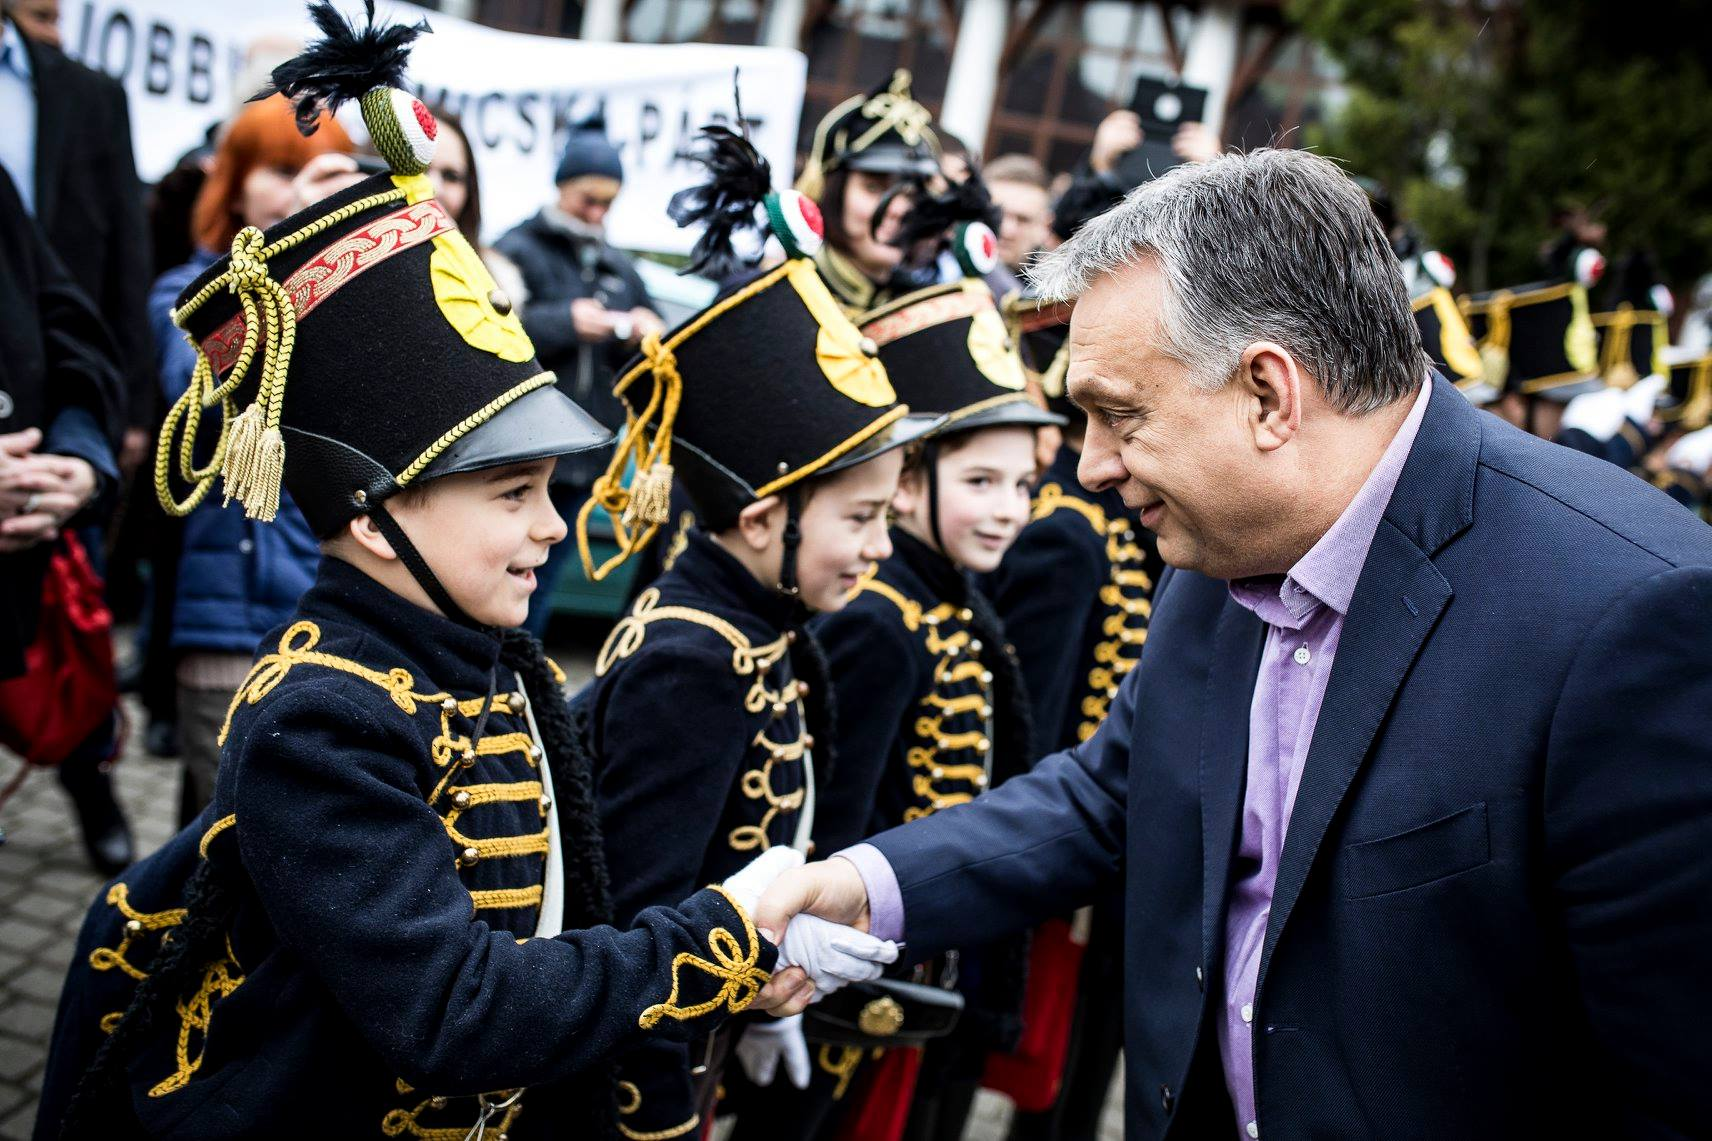 Viktor Orbán fined $1,400 for campaigning among children